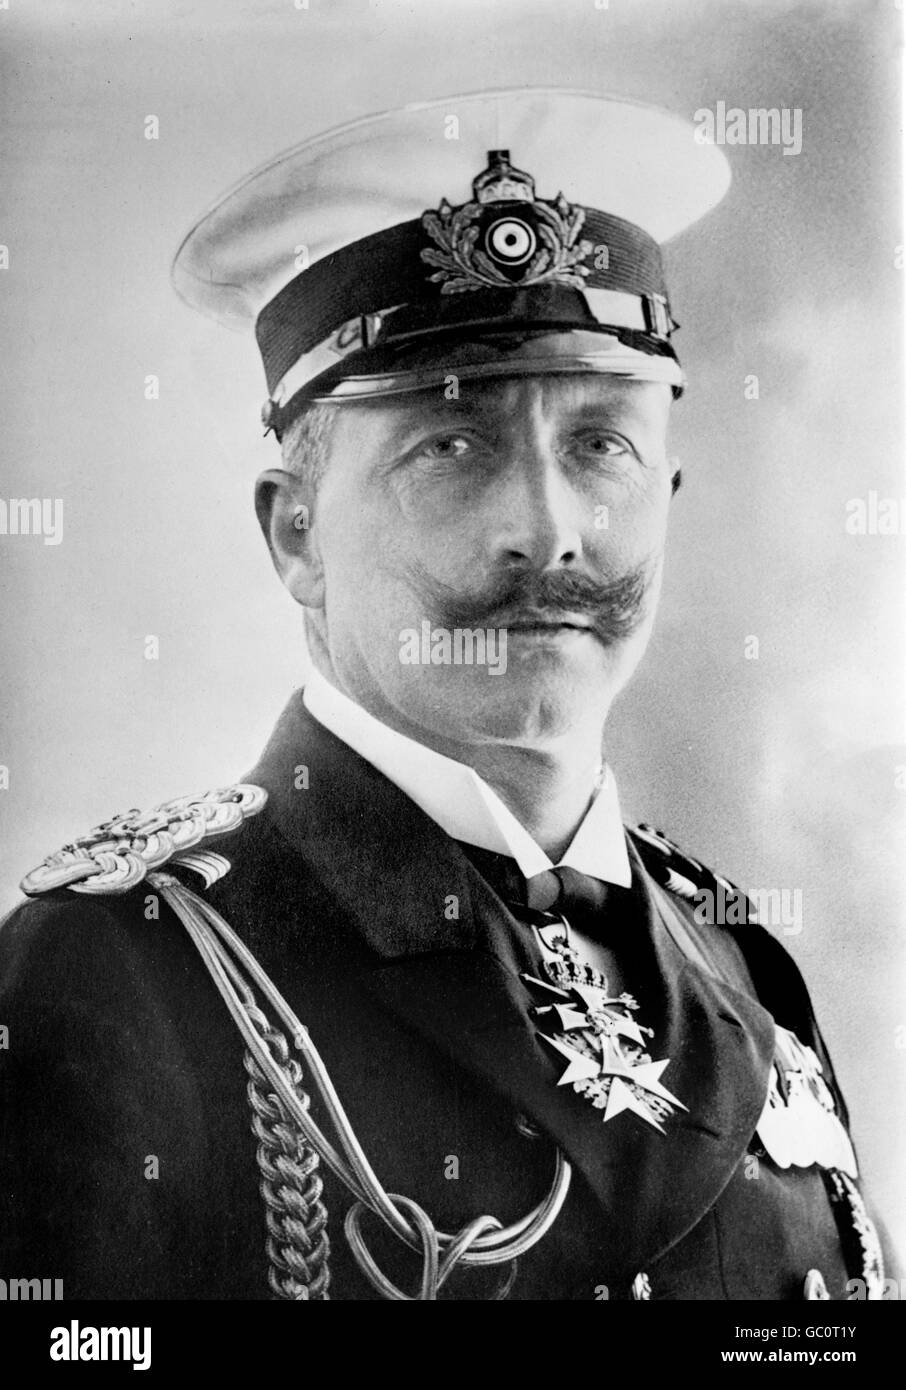 Kaiser Wilhelm II (1859-1941). Portrait of the Emperor of Germany and King of Prussia, wearing naval uniform.  Photo - Stock Image